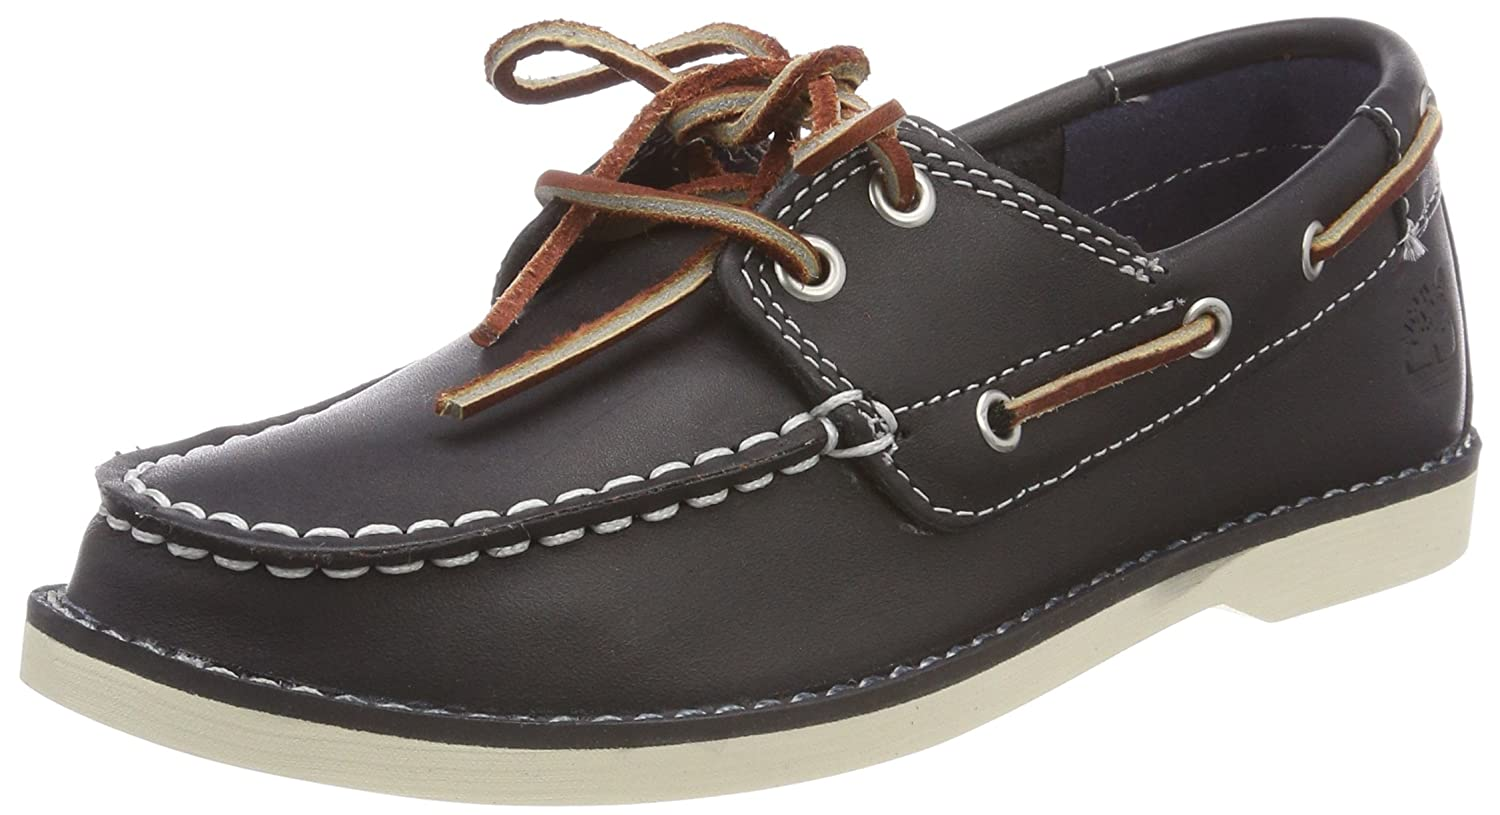 Timberland Seabury Classic 2eye, Mocassins (Loafers) Mixte Enfant 3199A M